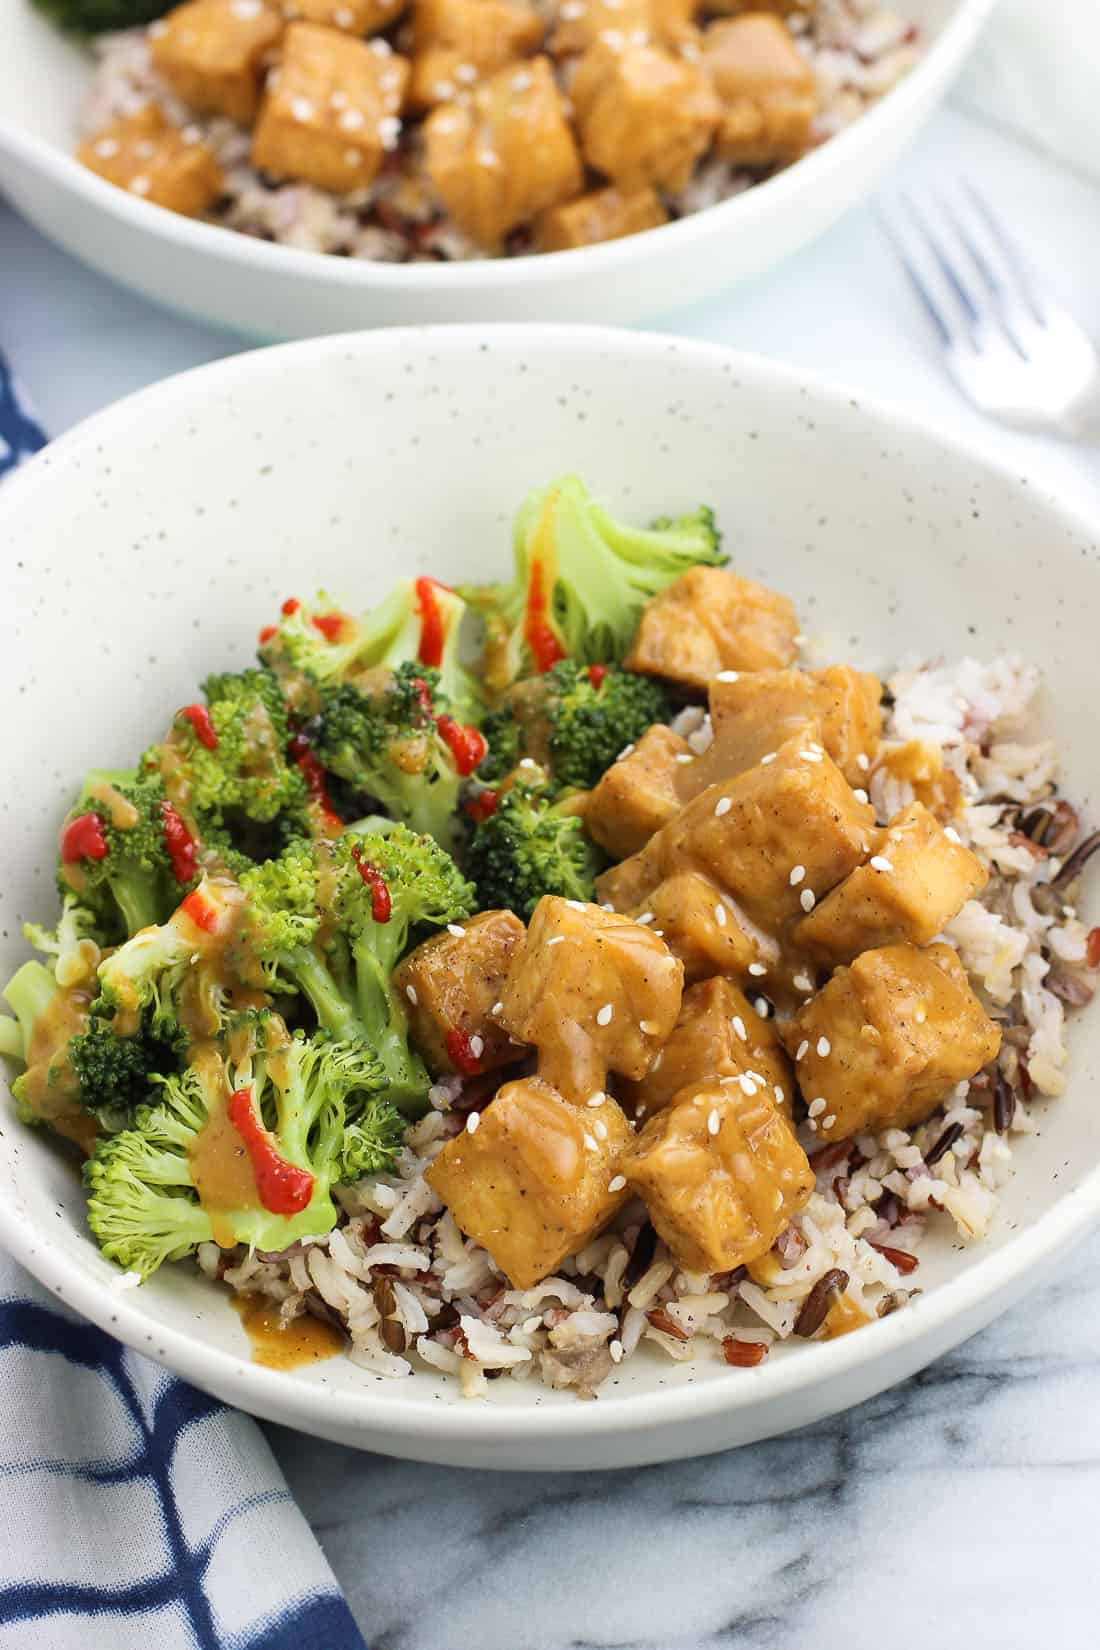 A bowl with tofu, rice, and broccoli with another bowl of the same in the background